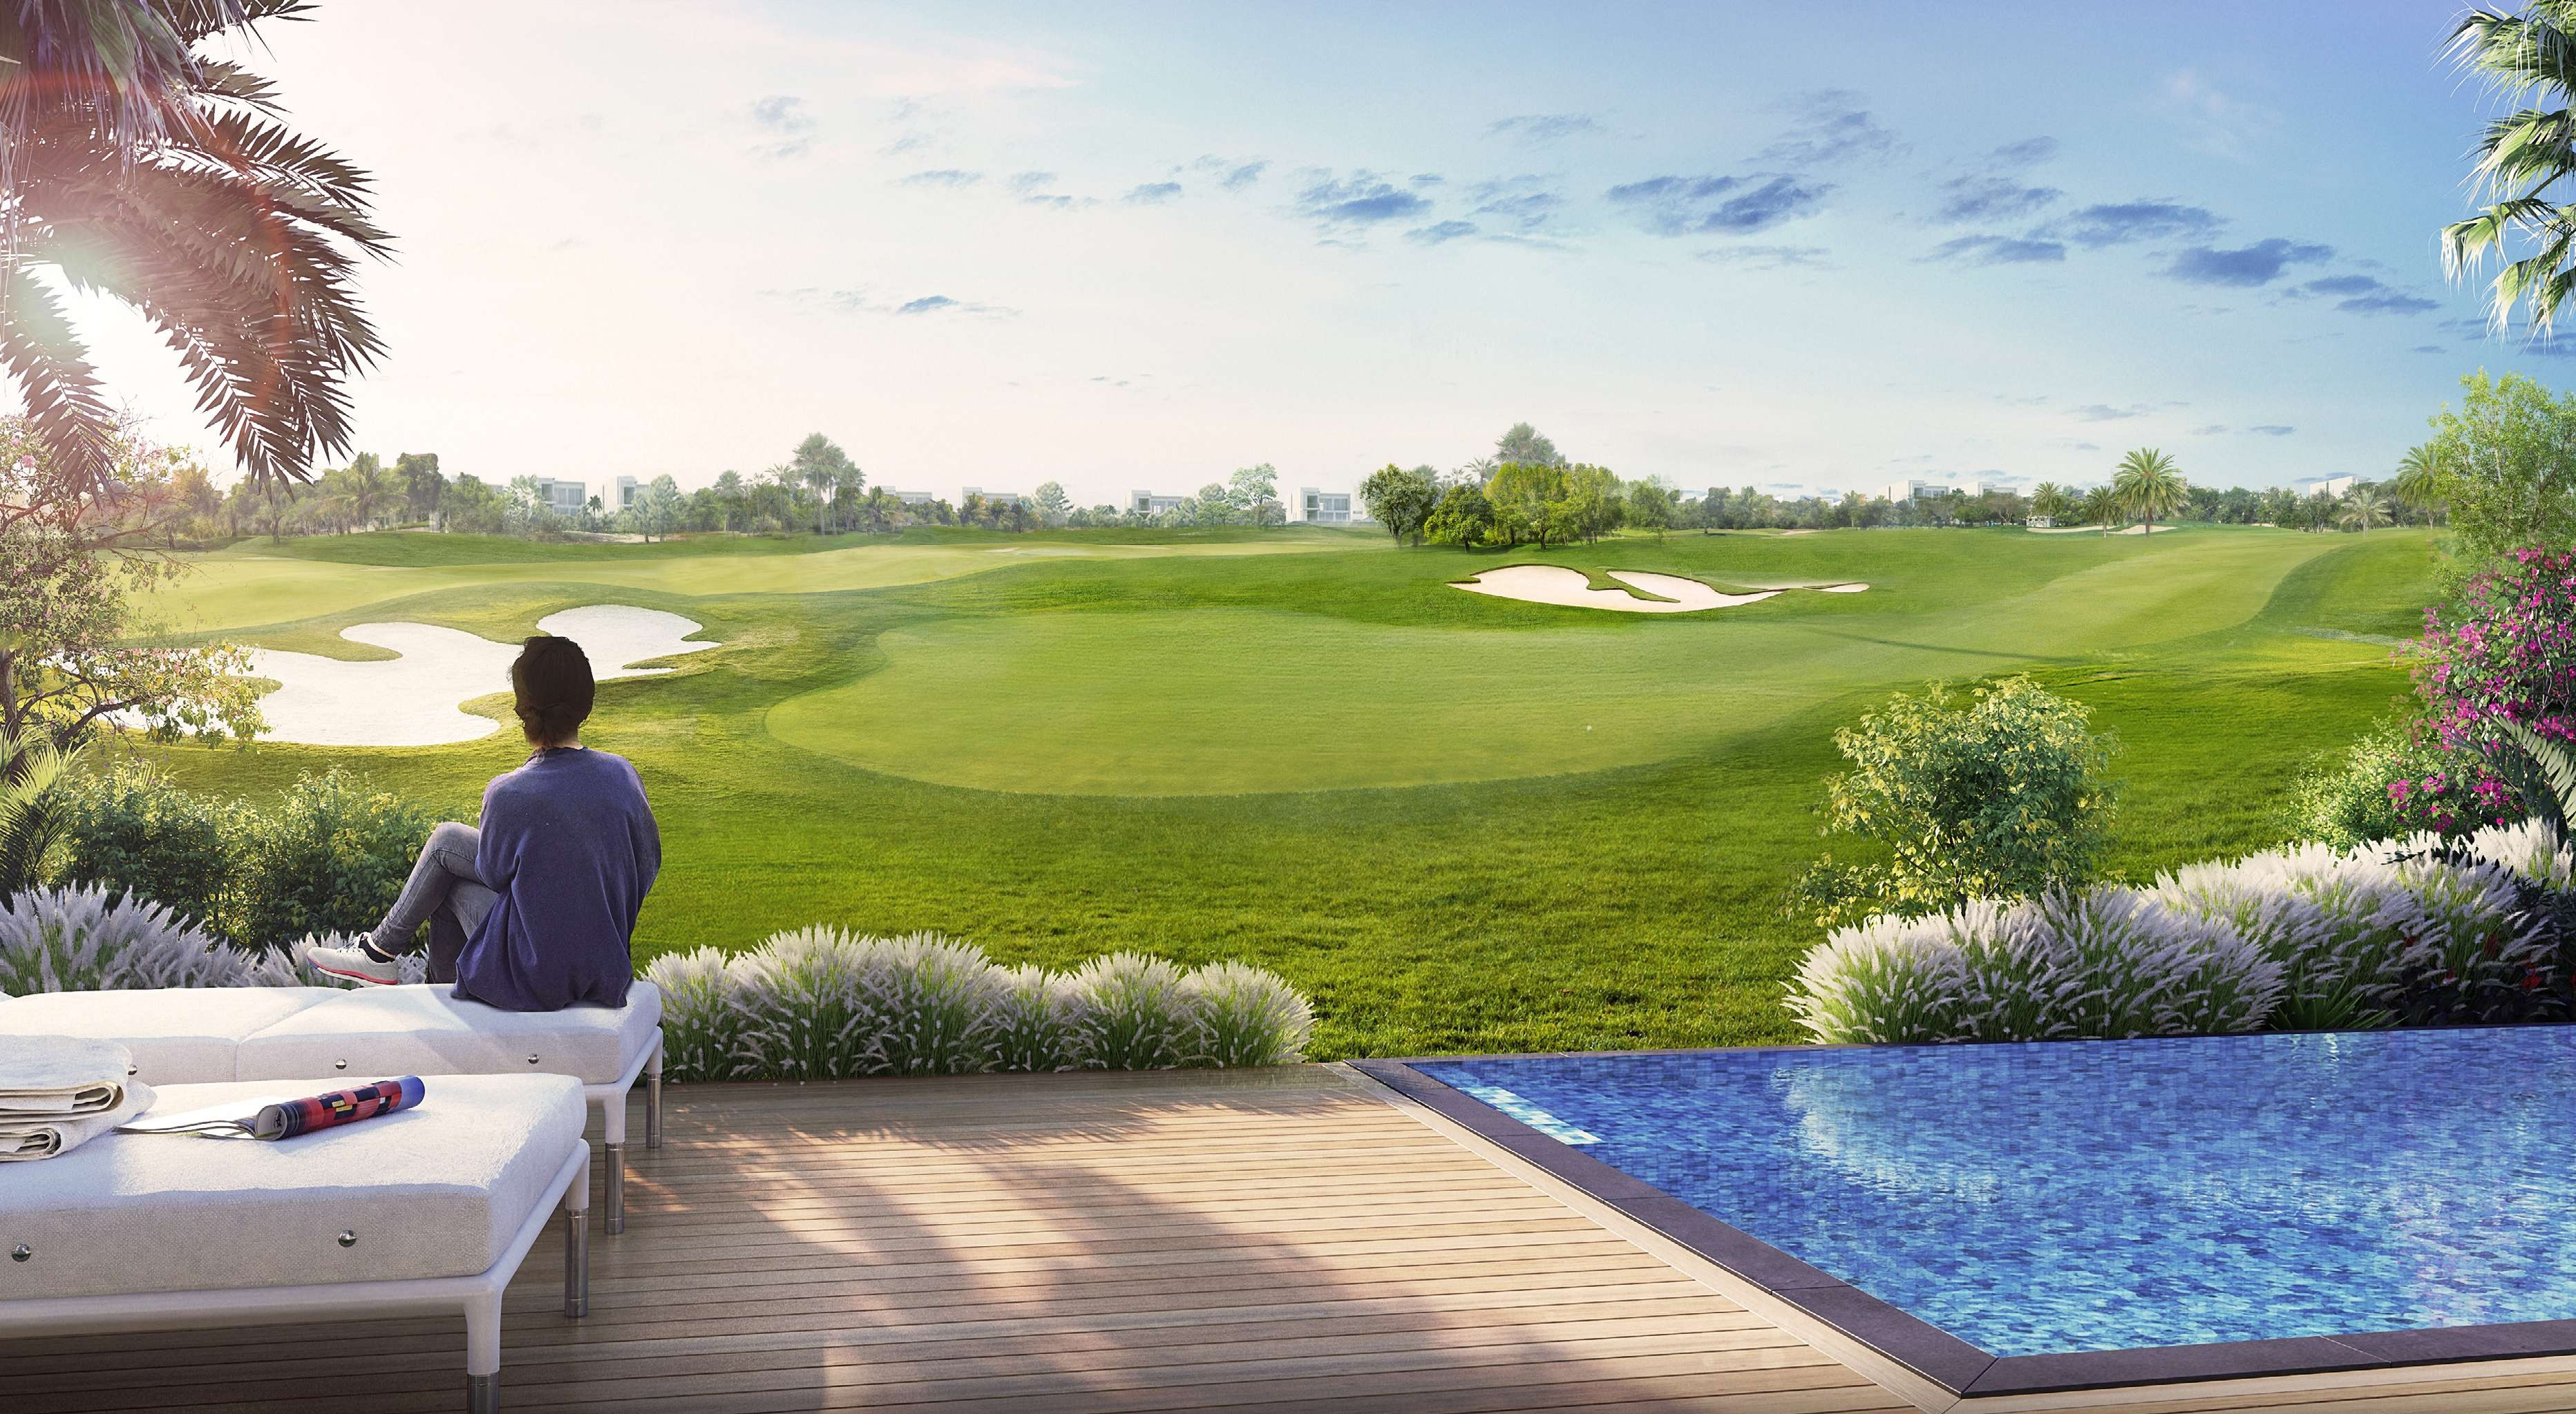 Golf Links Villas at Dubai South